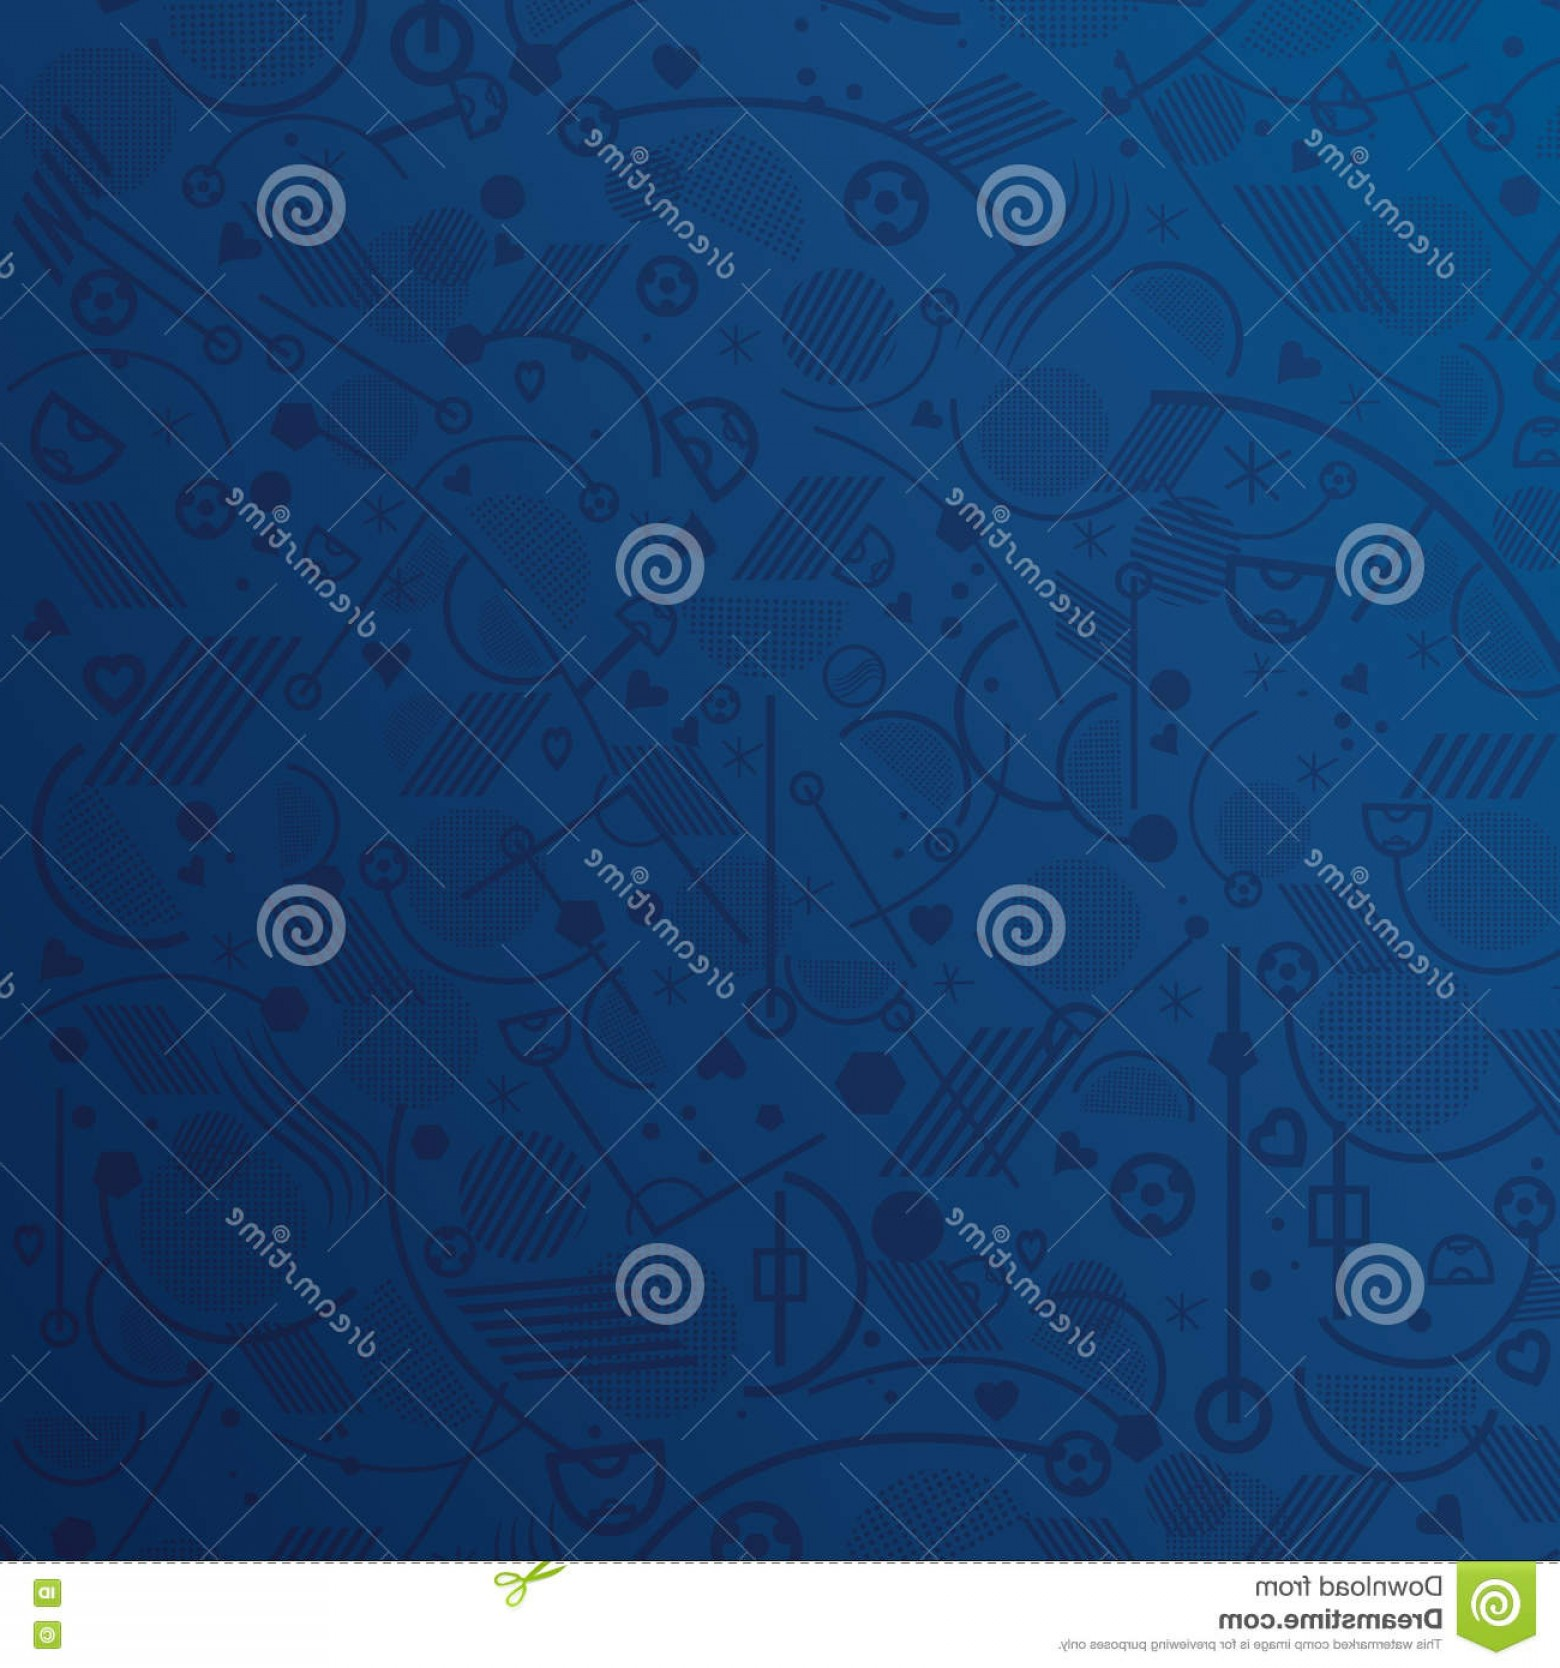 Soccer Blue Background Vector Graphics: Stock Illustration Blue Wallpaper Abstract Geometric Background Soccer Vector Illustration Art Print Web Design Image